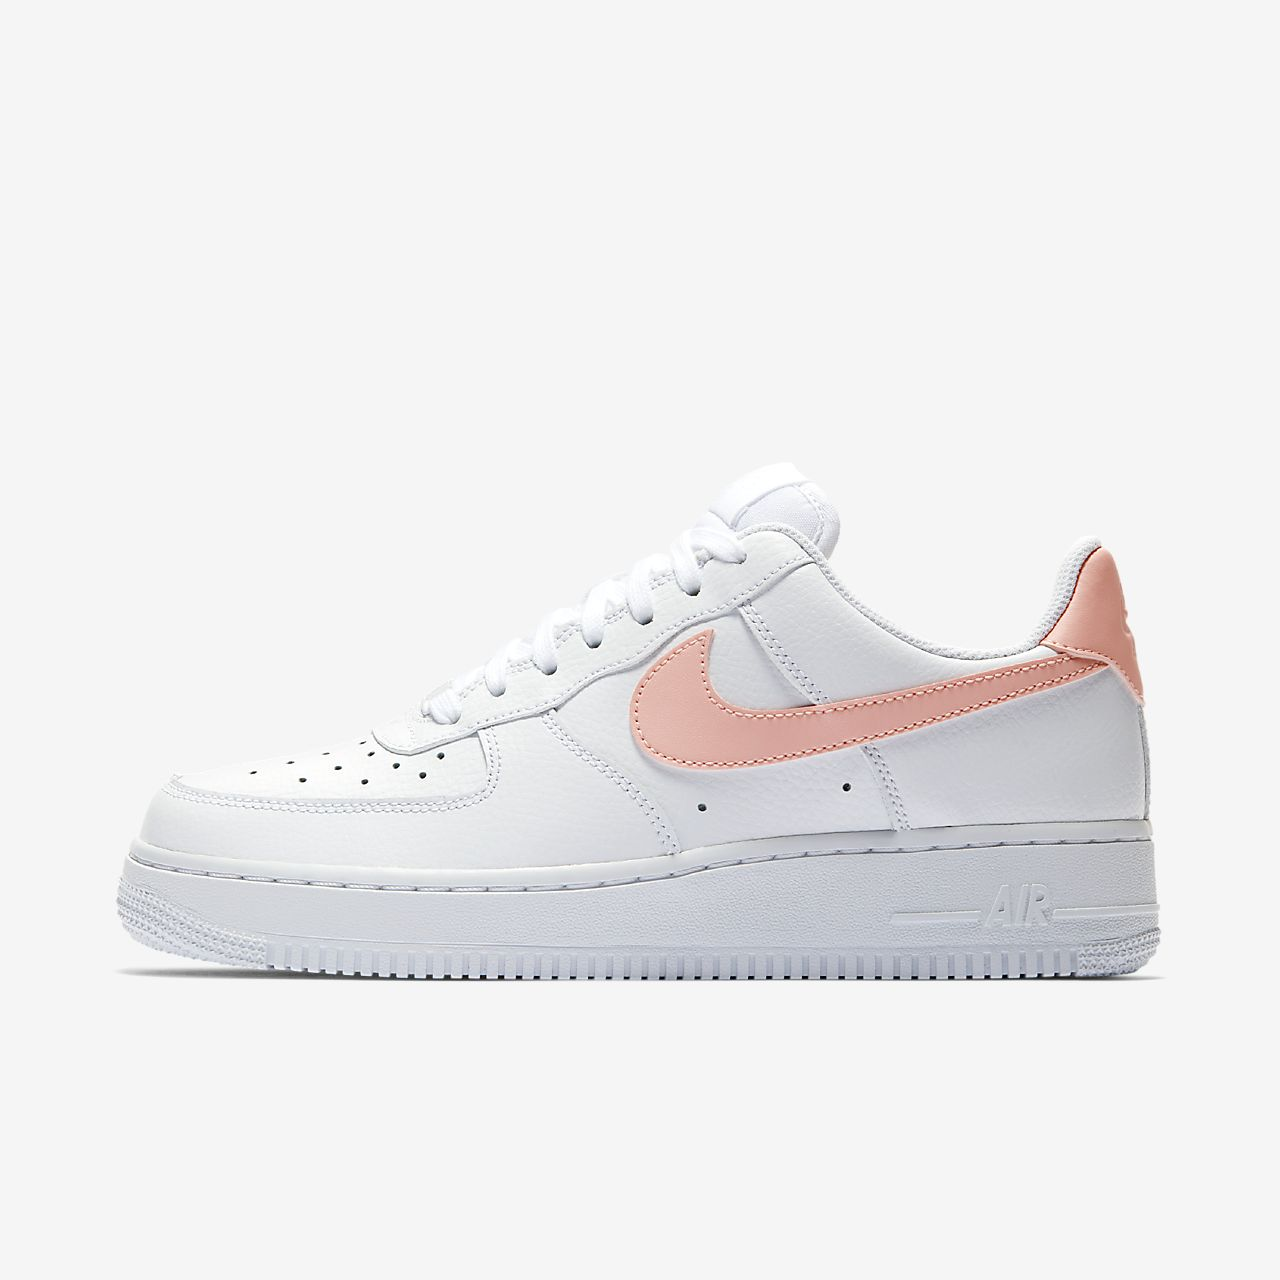 scarpa nike air force 1 '07 patent biancobiancooracle pink